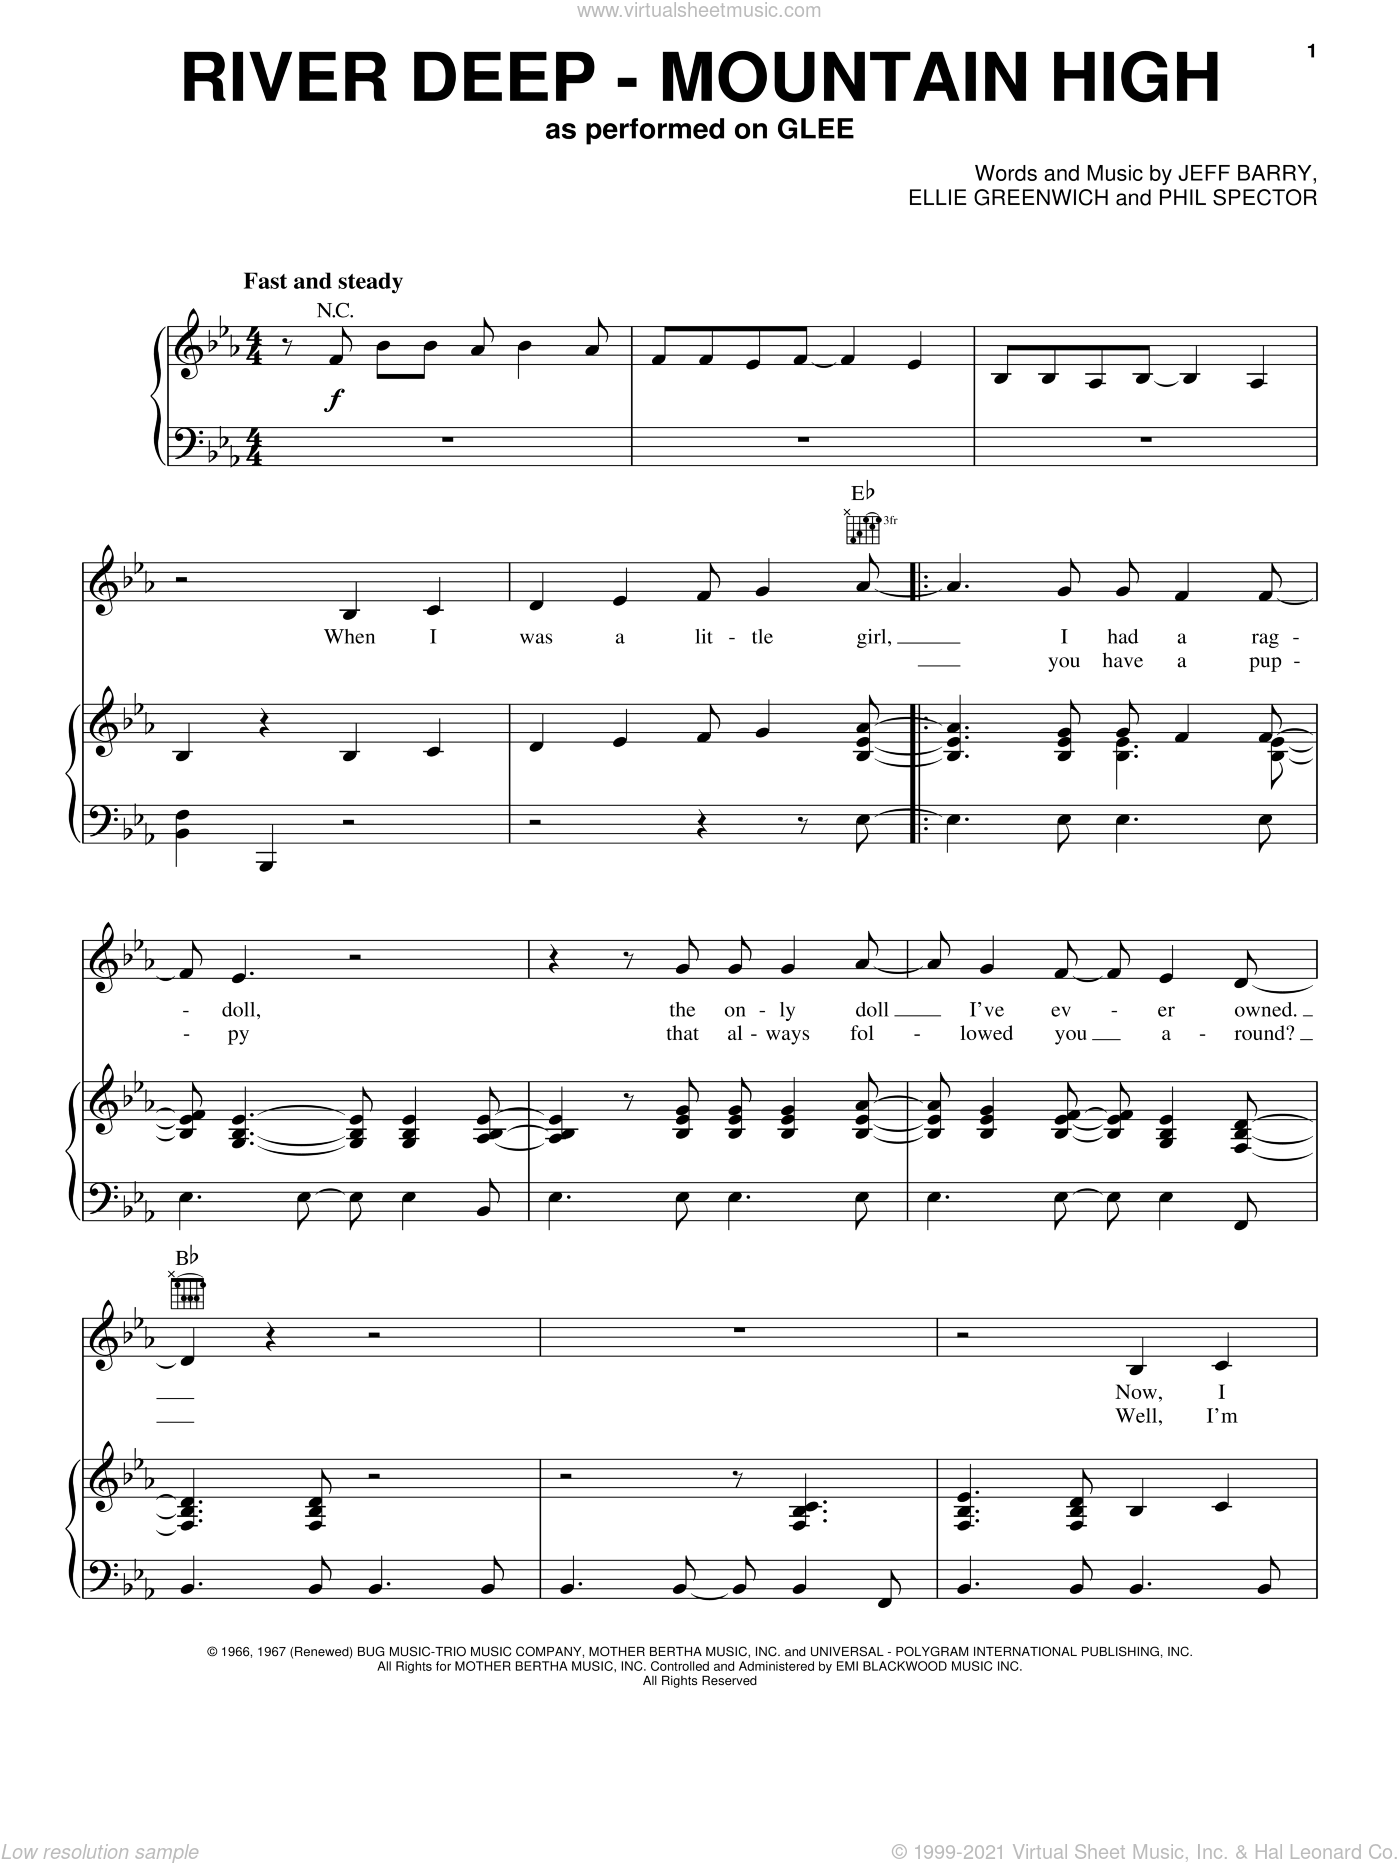 River Deep - Mountain High sheet music for voice, piano or guitar by Phil Spector